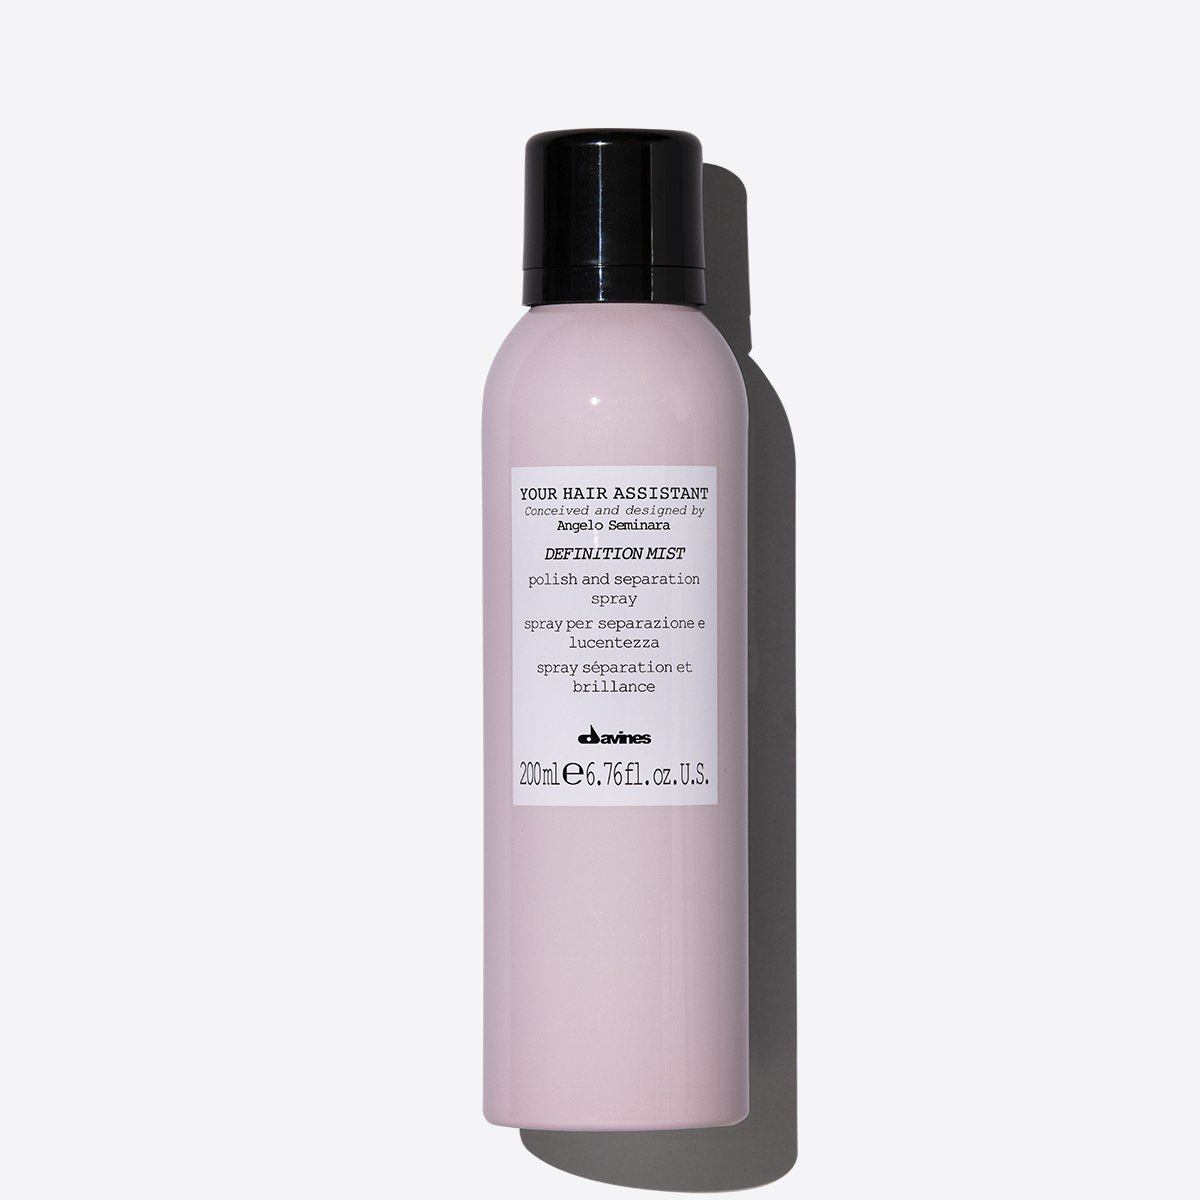 YOUR HAIR ASSISTANT Definition Mist. 200ml